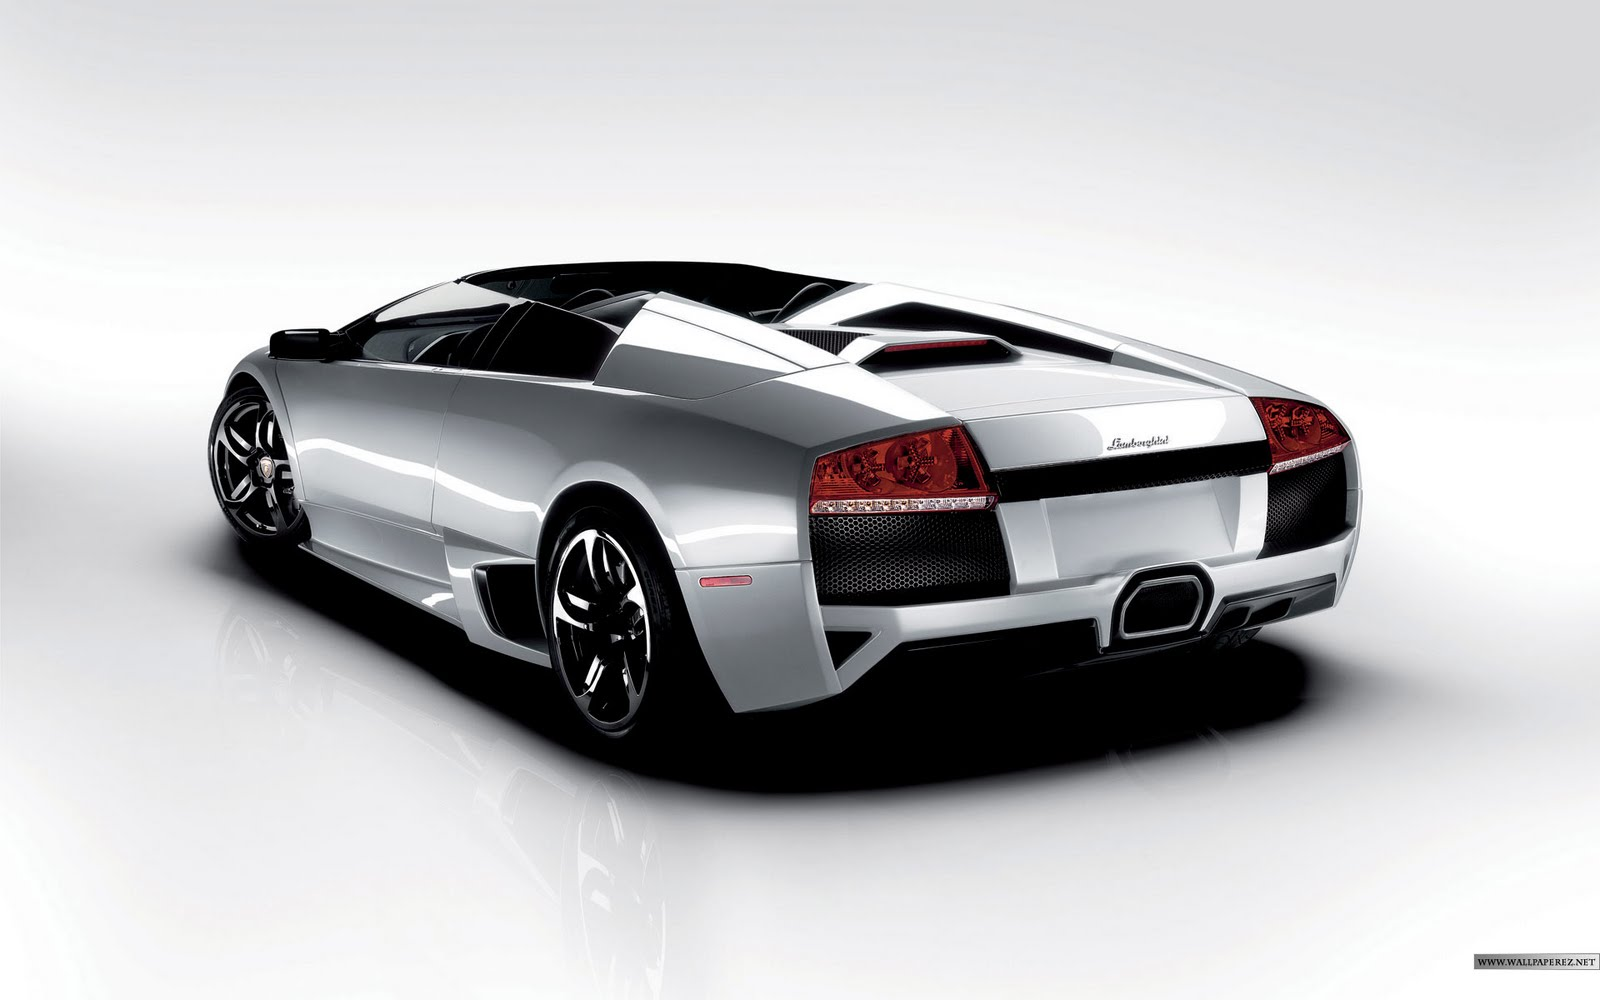 http://3.bp.blogspot.com/-NGHqE_96RLo/TXo9gIR-U1I/AAAAAAAAGf0/9WFPyEr1TcA/s1600/Lamborghini-prototype-car-Cars_Wallpapers_%25252Blucy%25252Bpinder%25252Bcars%25252Bsexy%25252Blucy%25252Bin%25252Bcar%25252Bsilver%25252Bcars%25252Blatest%25252Bcars%25252Blincoln%25252Bmercedies%25252Bhonda%25252BBMW%25252Bmitsubishi%25252Blatest%25252Bcars%25252B2011%25252Bcars%25252Bcollection%25252Bhigh%25252Bquality%25252Bwallpapers%25252Bjulia%25252Bro.jpg